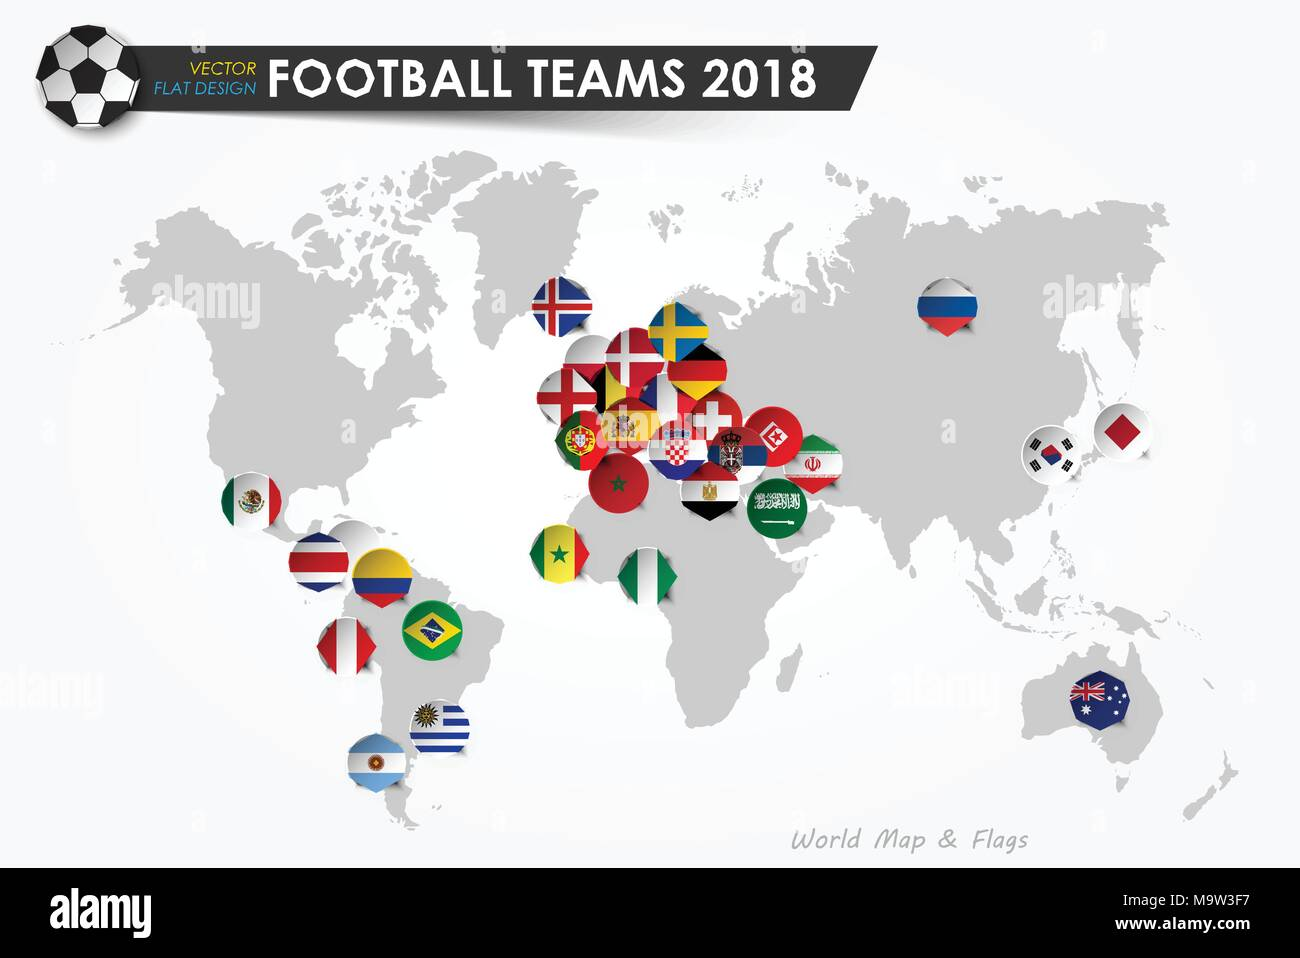 Soccer cup 2018 country flags of football teams on world map country flags of football teams on world map background vector for international world championship tournament 2018 concept flat gumiabroncs Image collections